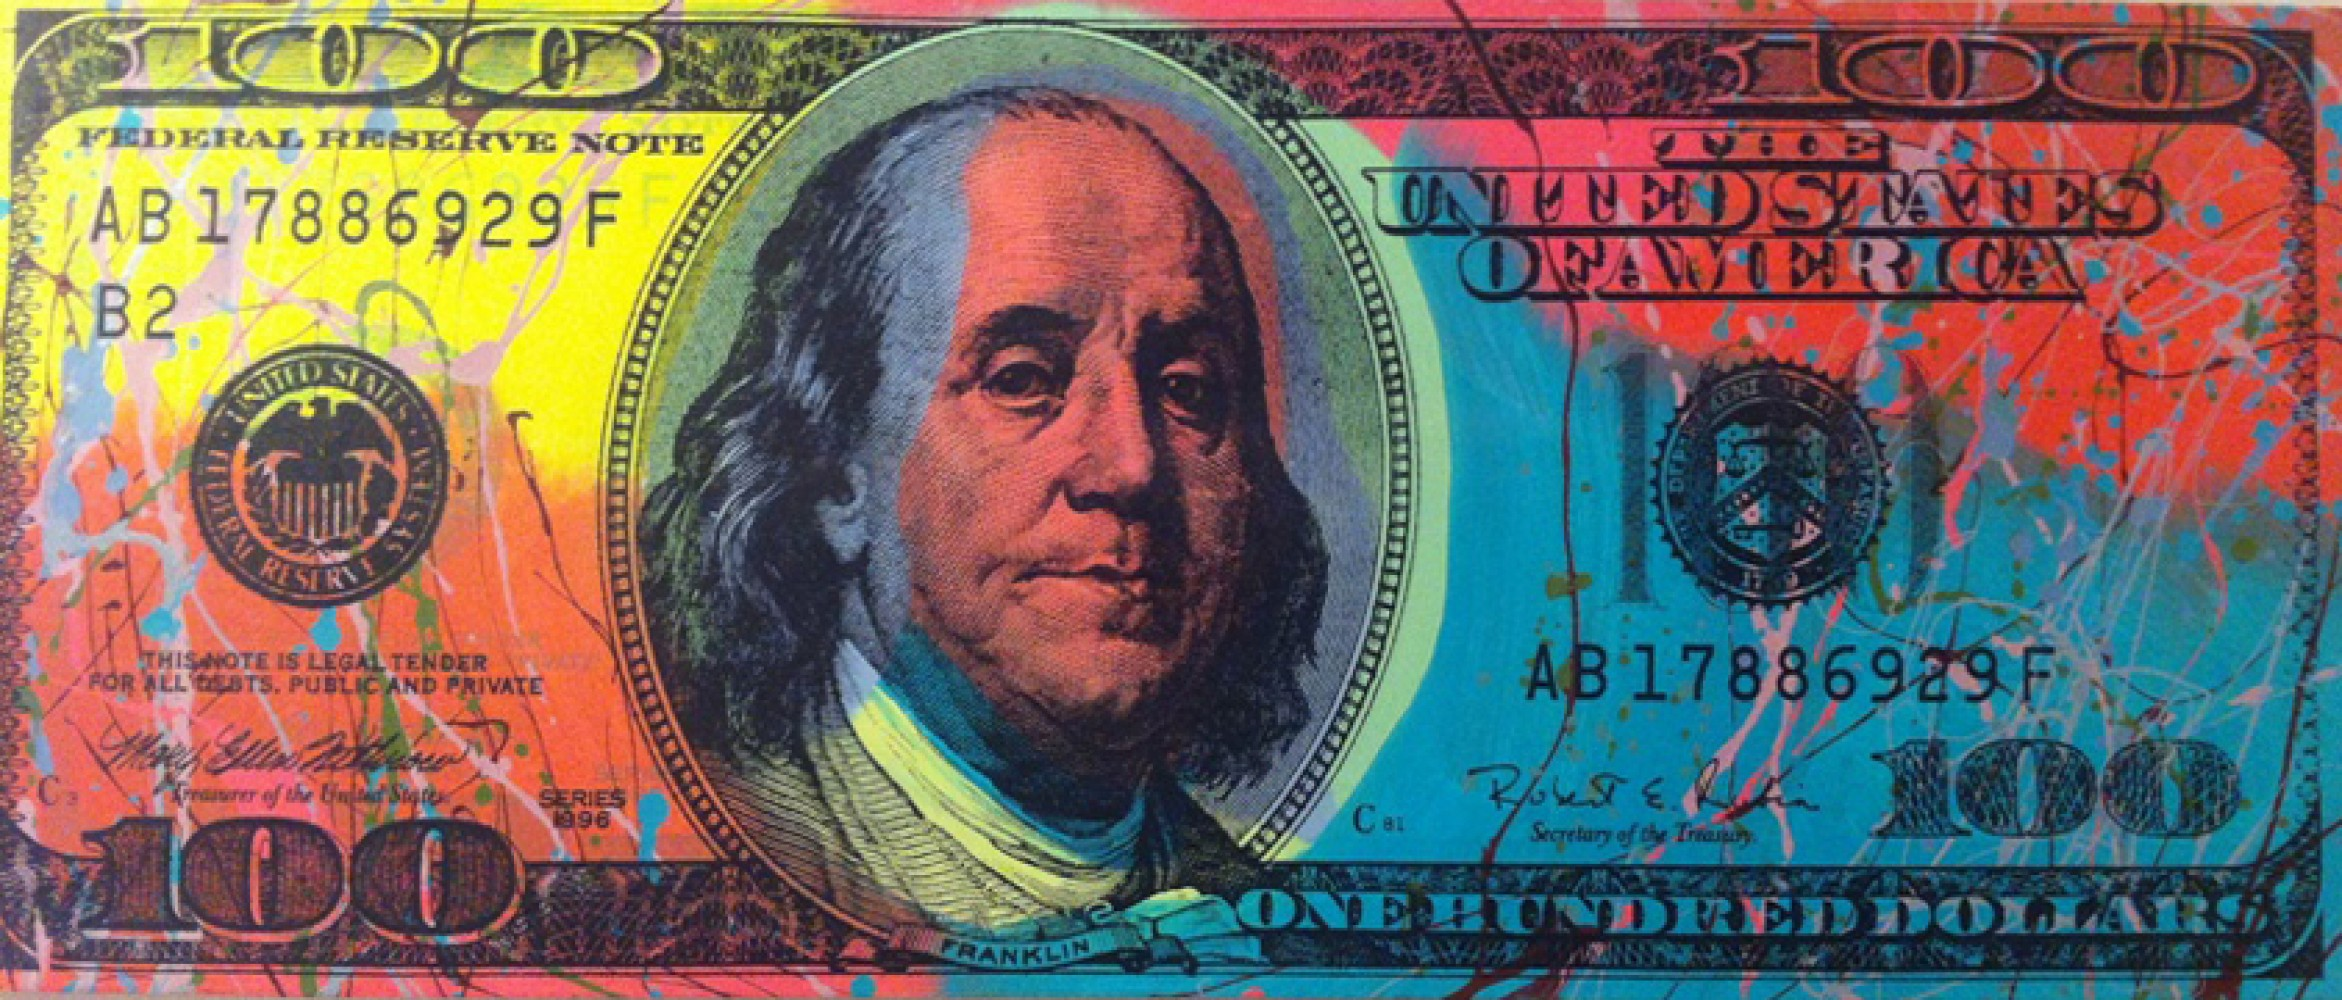 New $100 Dollar Bill - Ben Franklin